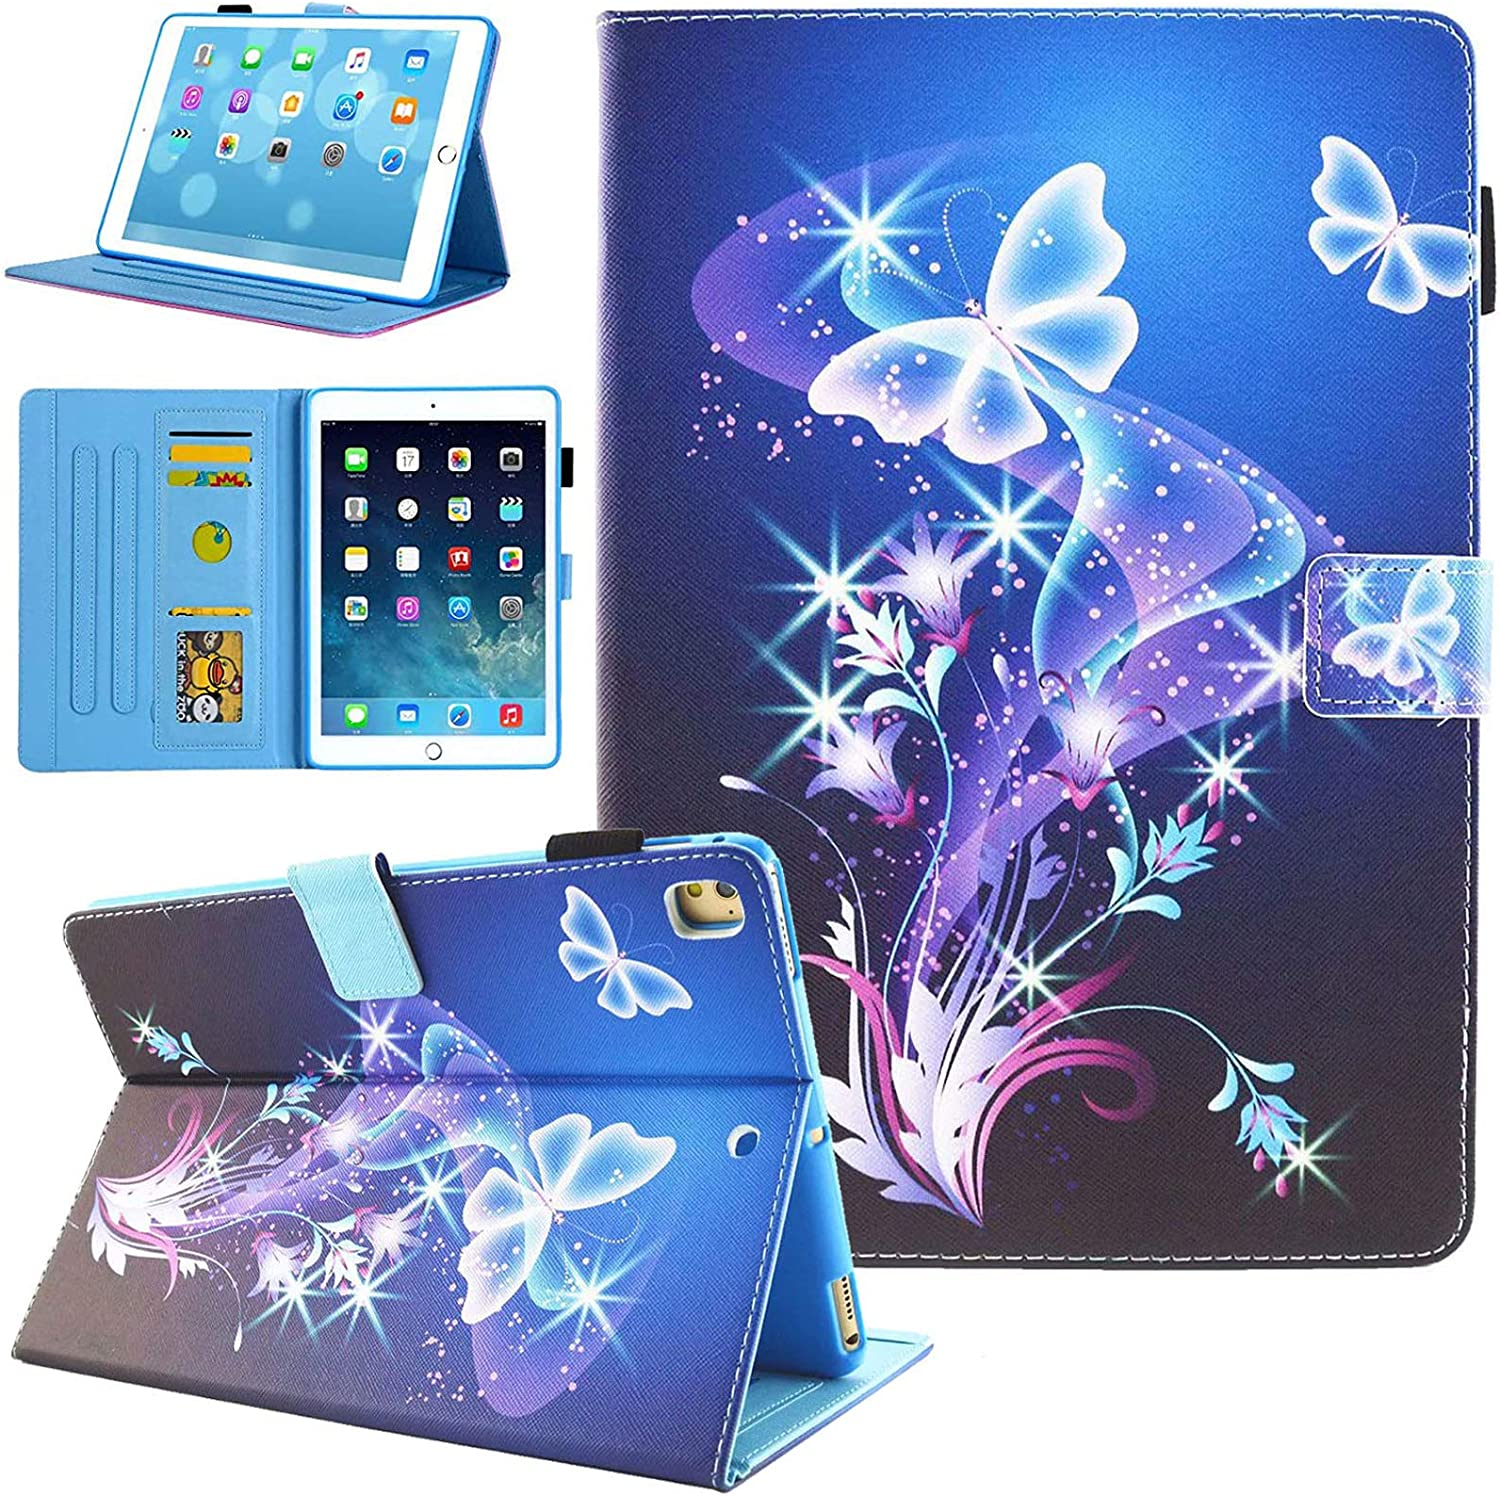 New Max 50% OFF iPad 10.2 Inch Case Generation 9th New mail order 7th 2021